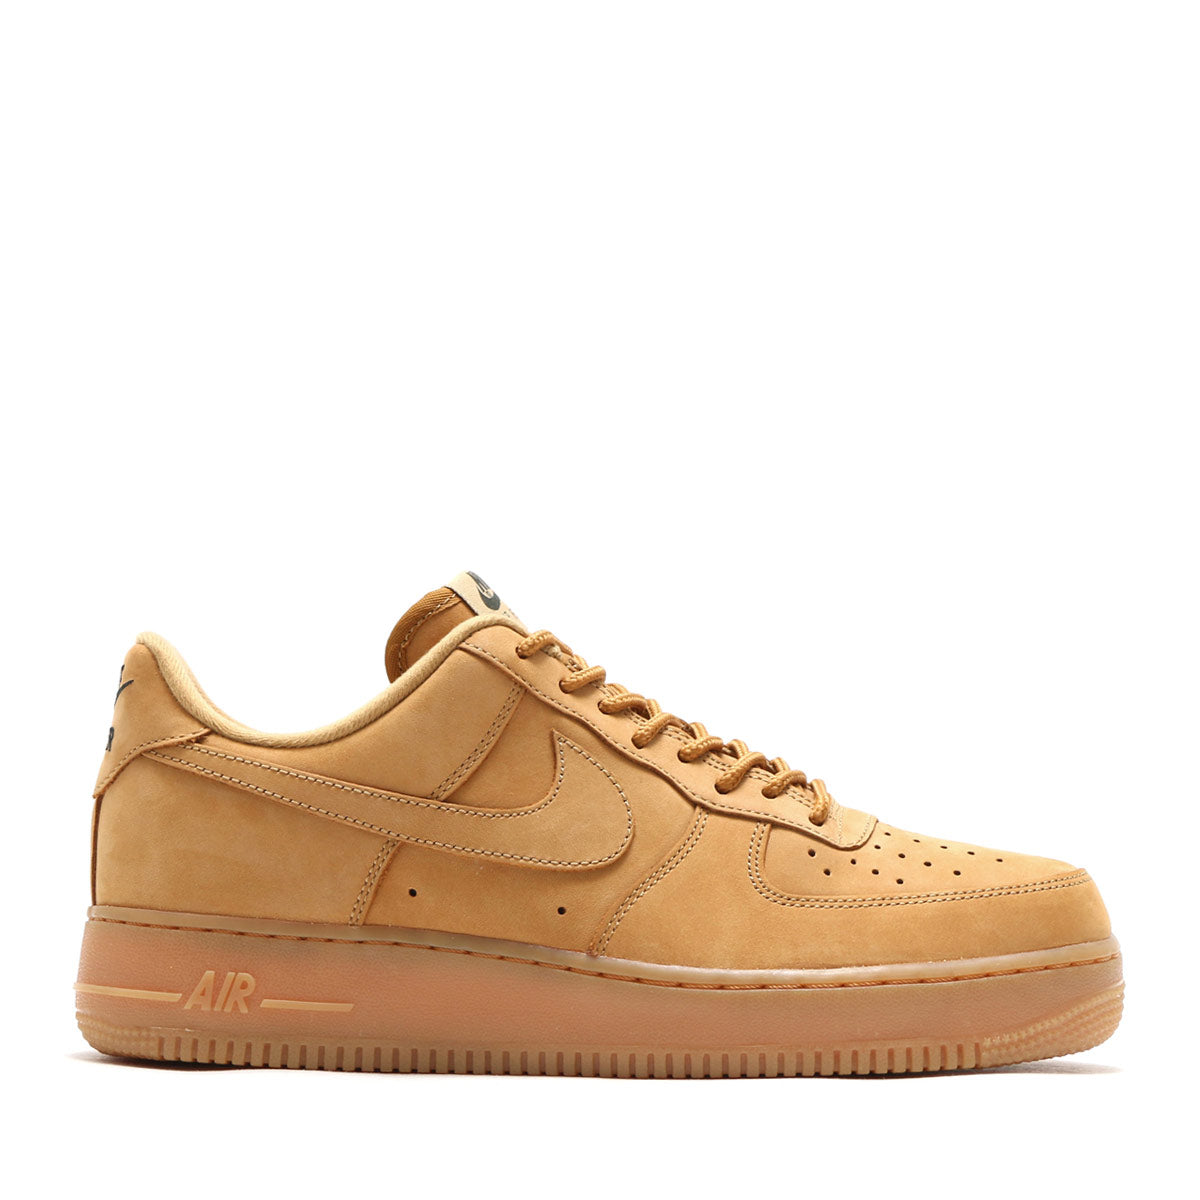 online retailer 4af0a 4b786 Nike Air Force 1 '07 WB FLAX/FLAX-GUM LIGHT BROWN-OUTDOOR GREEN (AA4061-200)